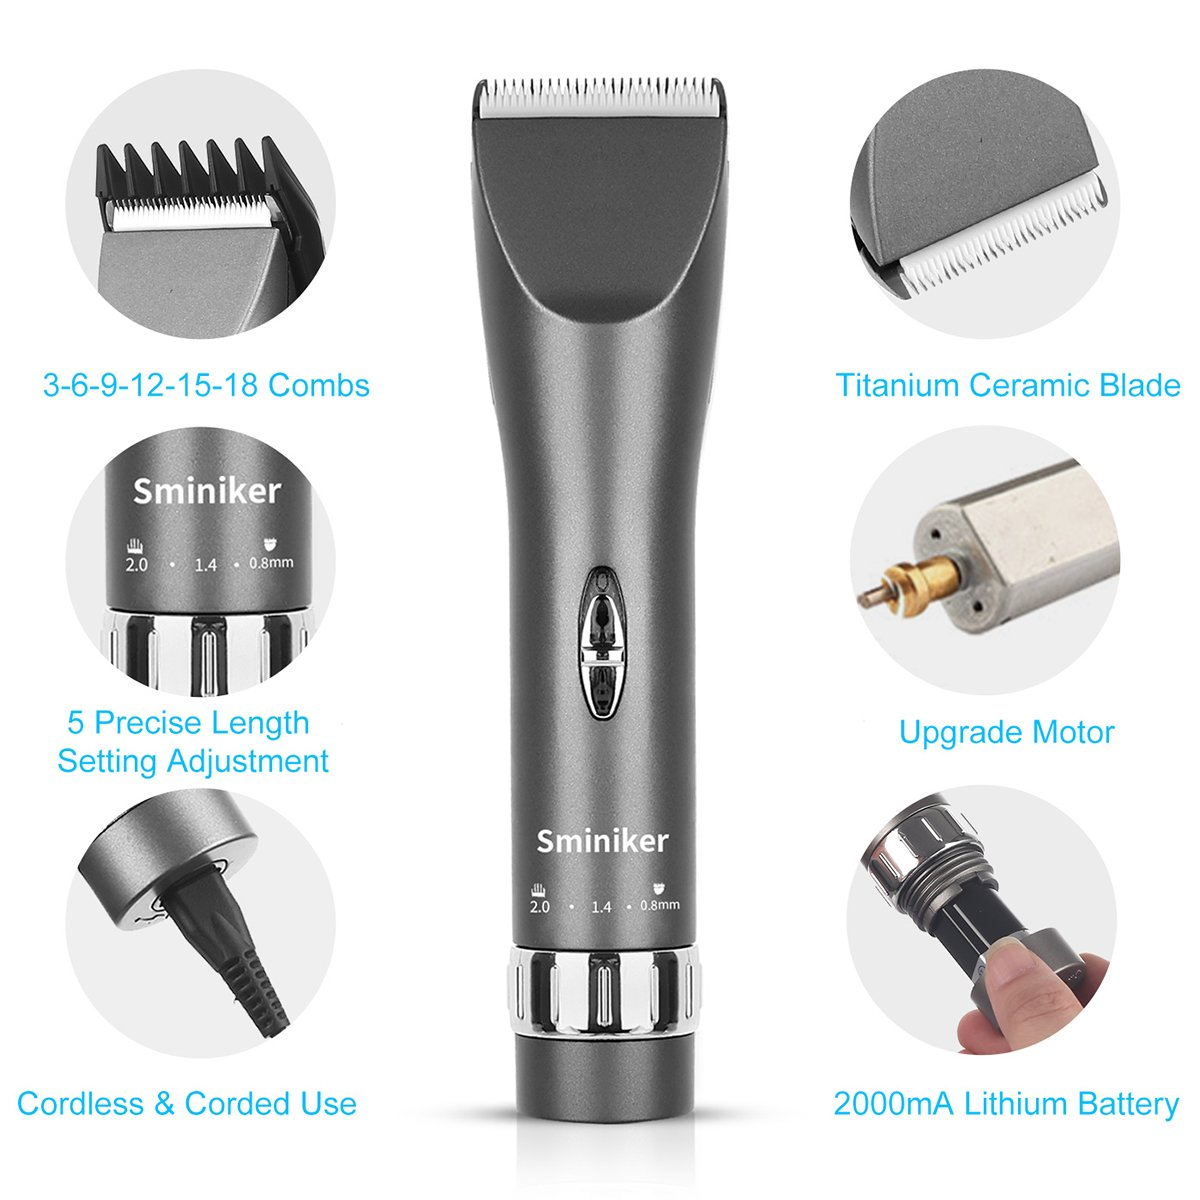 Cordless Haircut Kit Clippers for Men, Rechargeable Hair Clippers Set - Grey